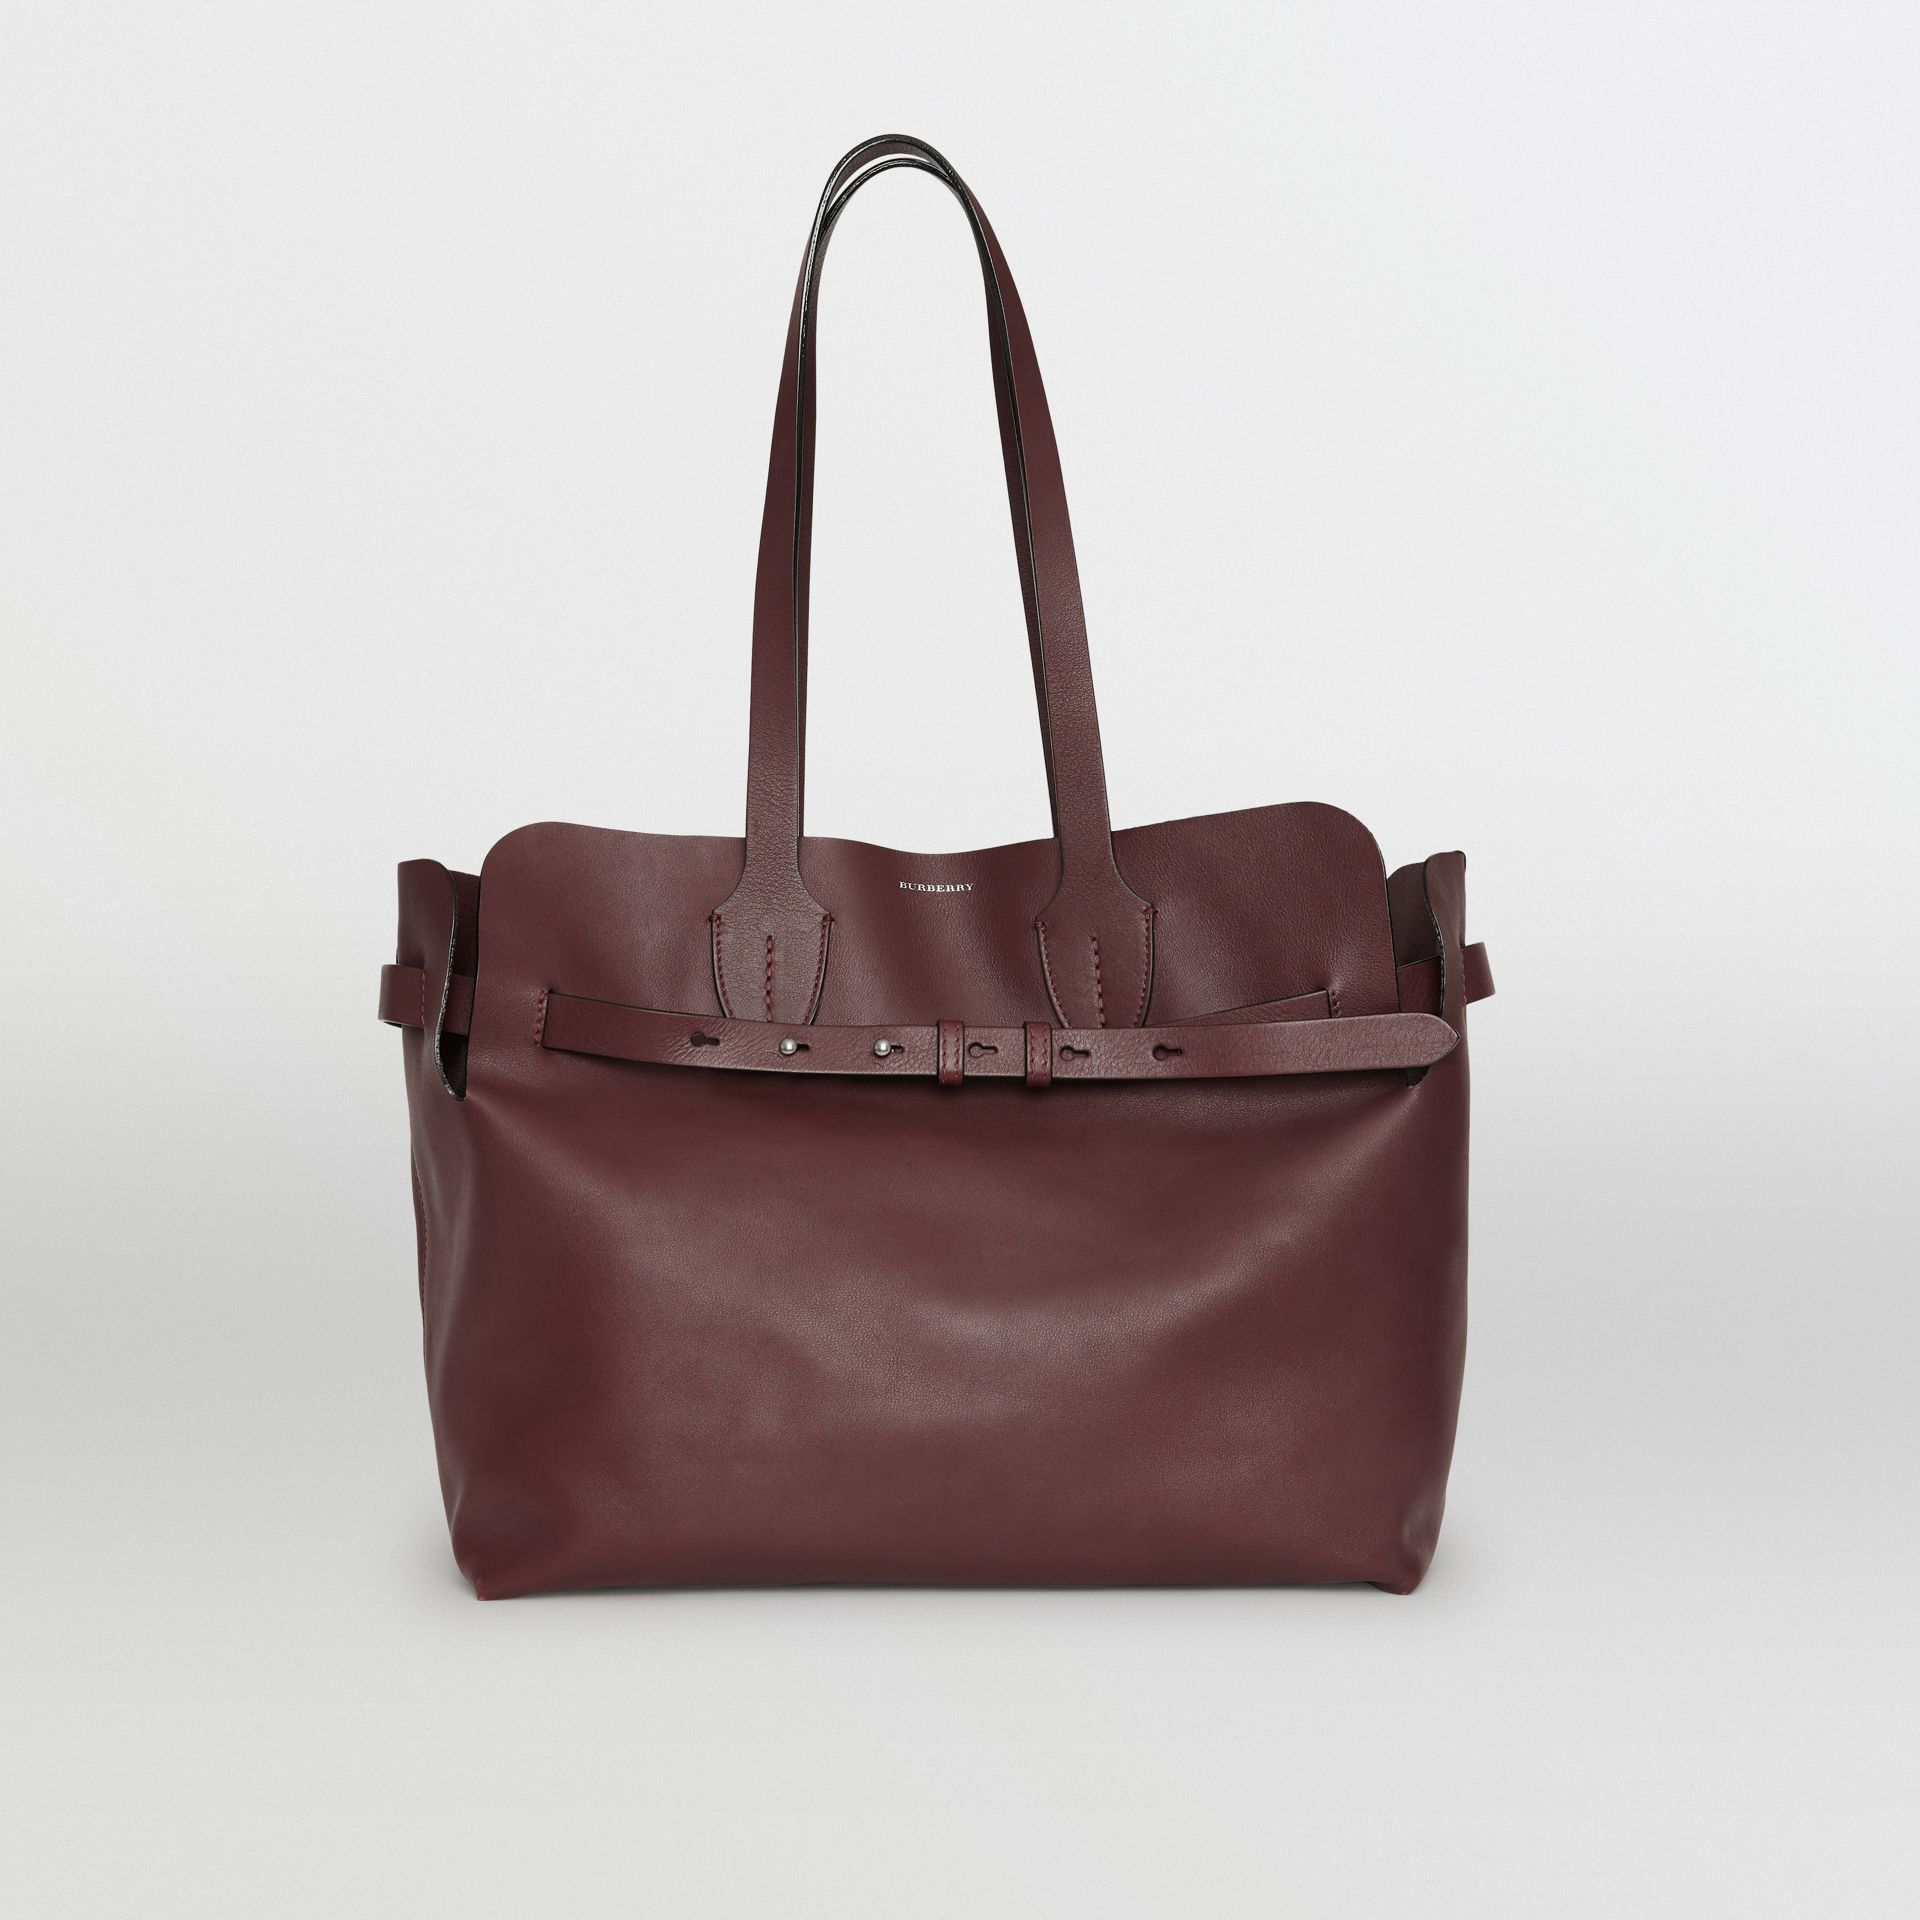 Sac The Belt moyen en cuir doux (Bordeaux Intense) - Femme | Burberry - photo de la galerie 0